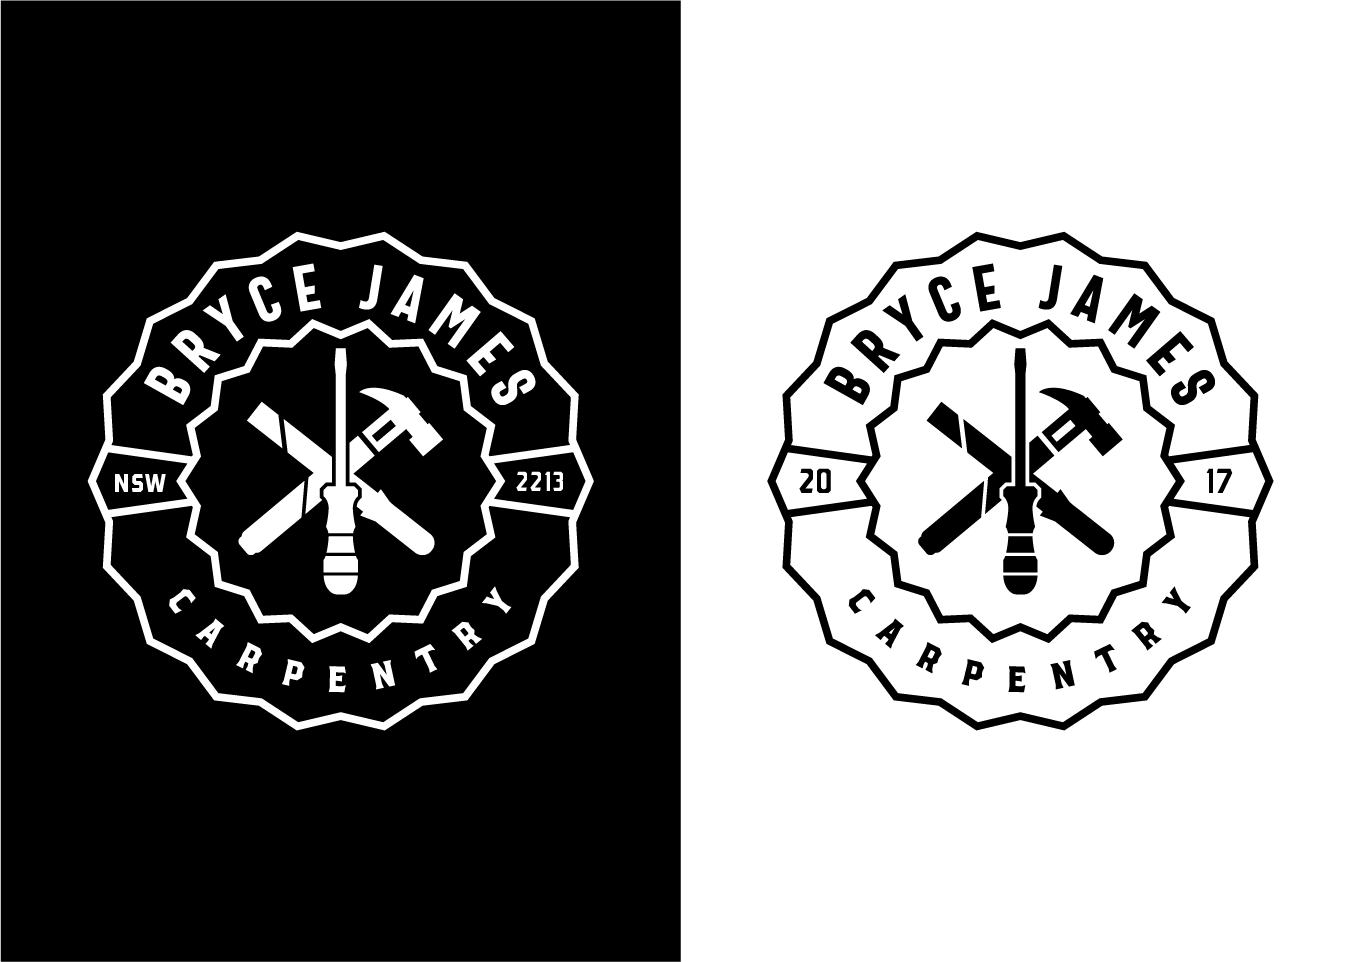 Bryce James Carpentry logo Black and white